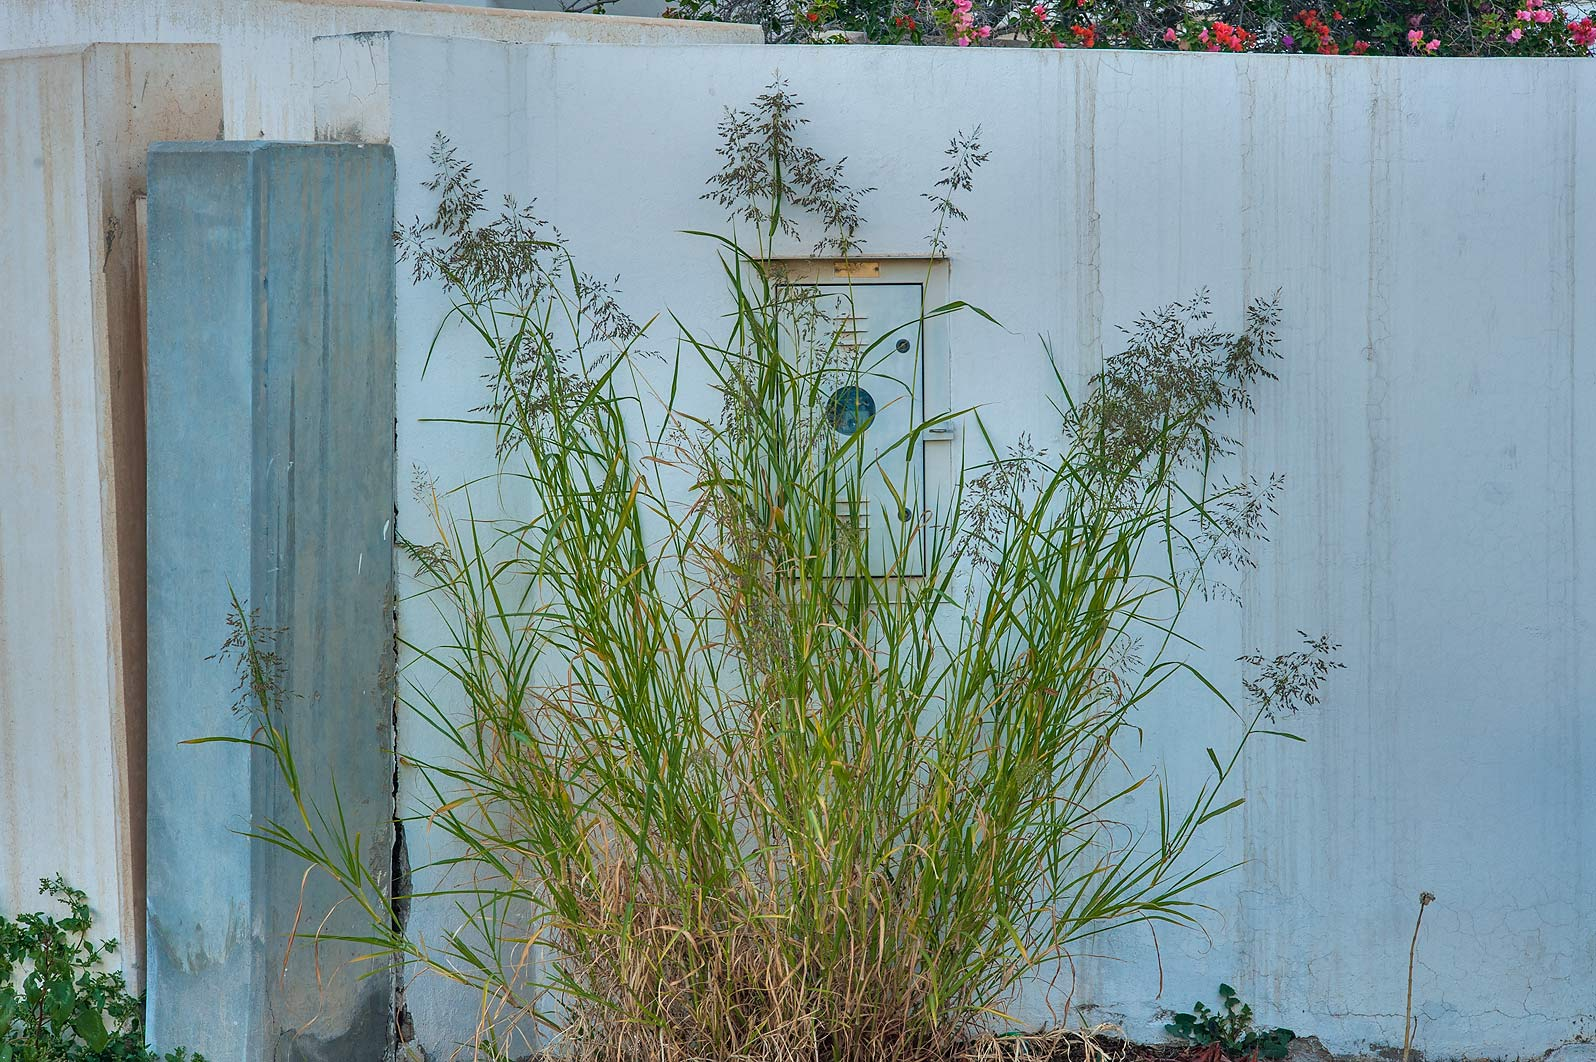 Blue panicgrass (Panicum antidotale) on United Nations St. in Onaiza area. Doha, Qatar